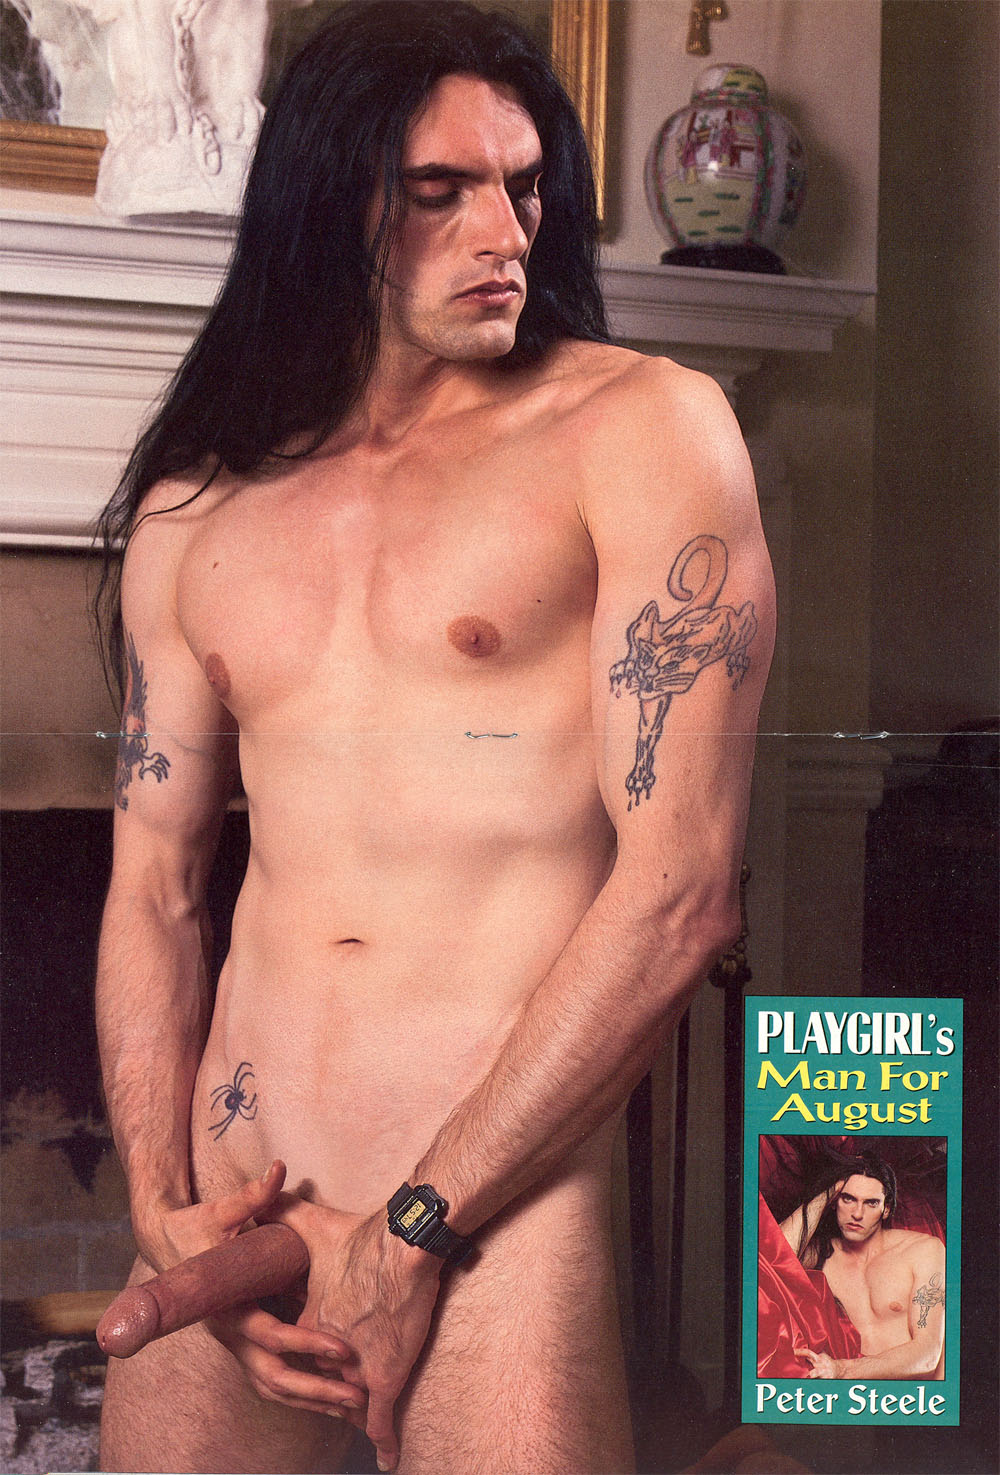 Peter steele nude photos